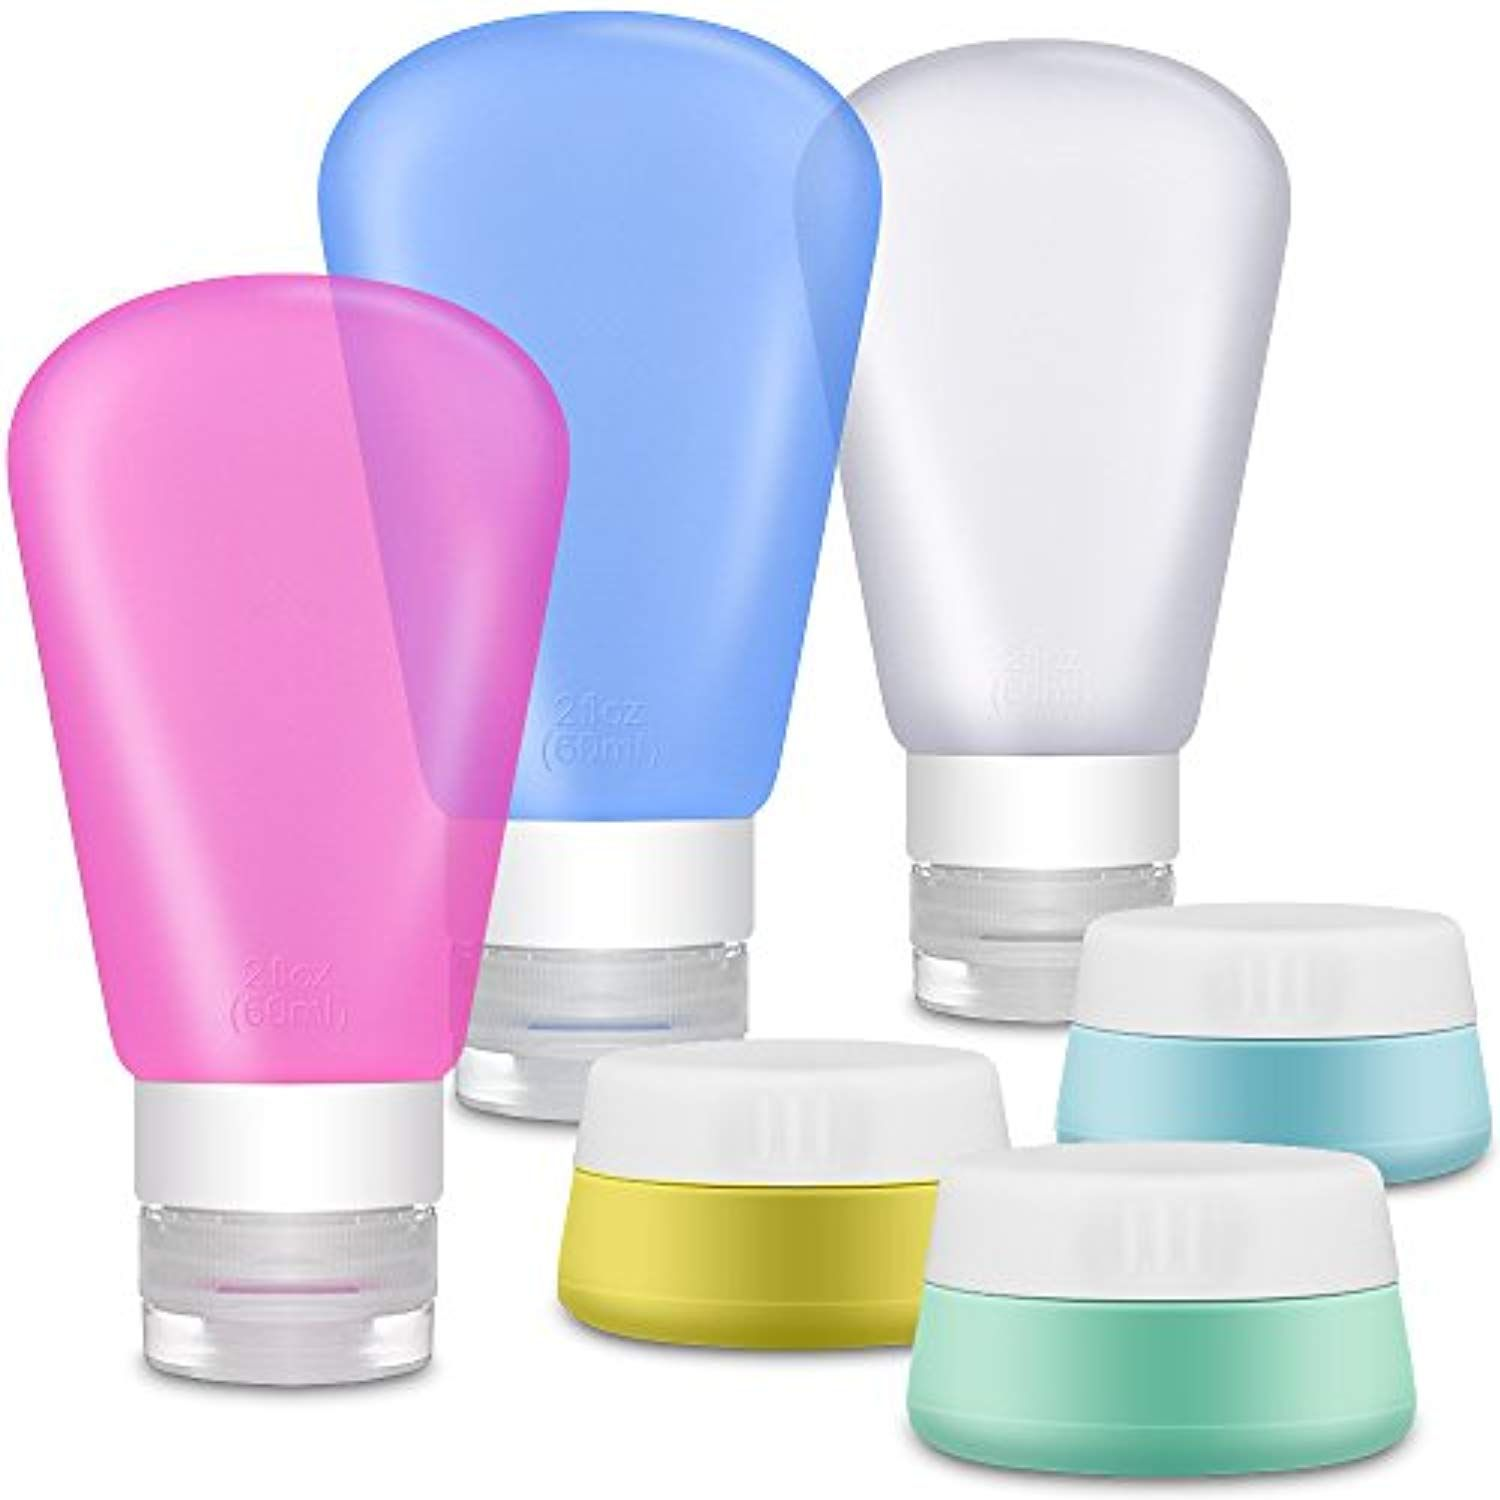 70e713f843c5 Portable Soft Silicone Travel Containers Set - IHUIXINHE 6 ...